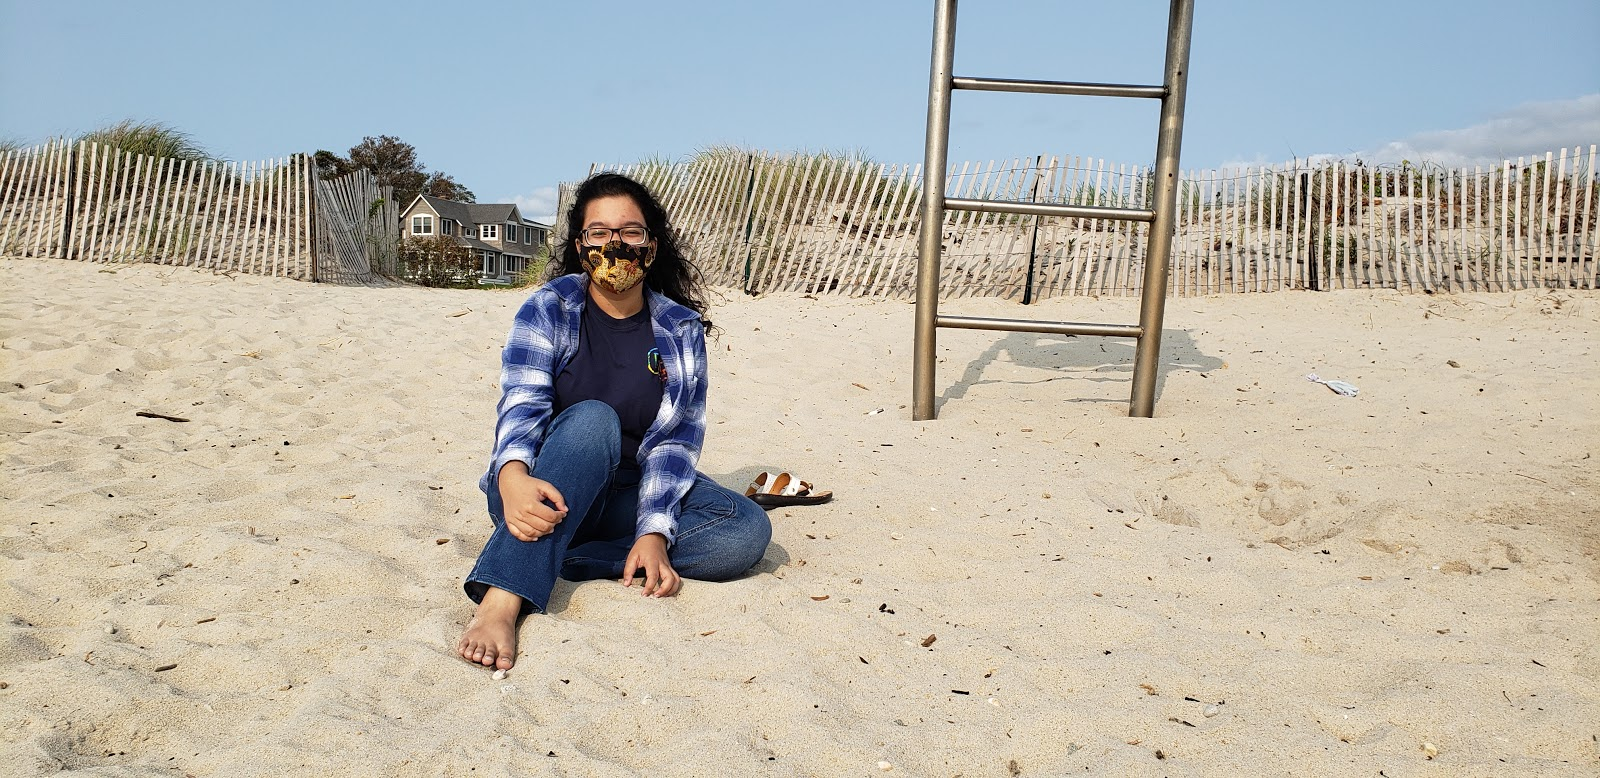 Samirah sits cross-legged in the sand at the beach with her mask on.